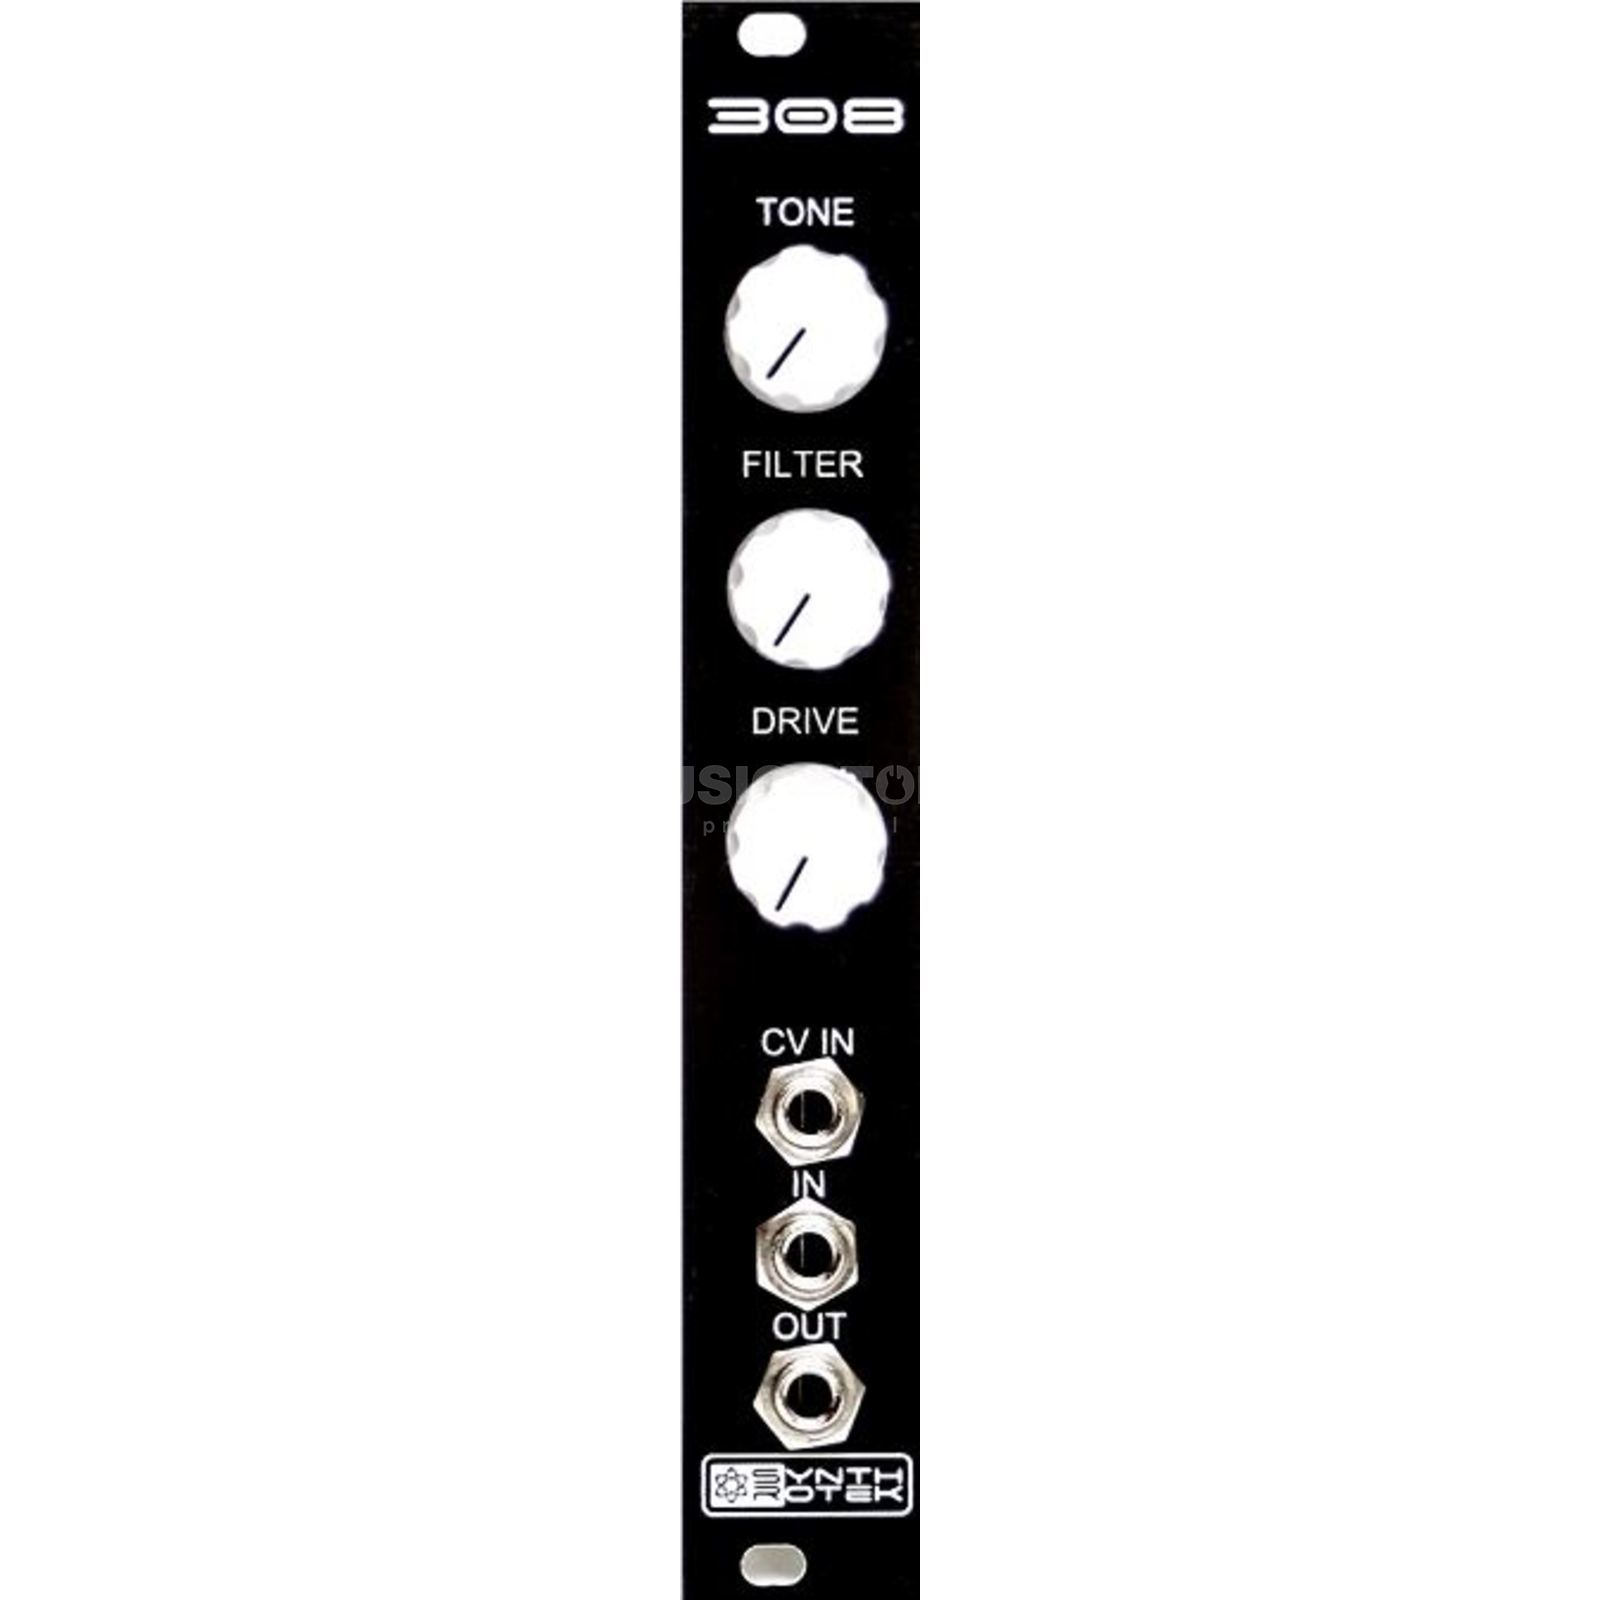 Synthrotek 308 Distortion Produktbild